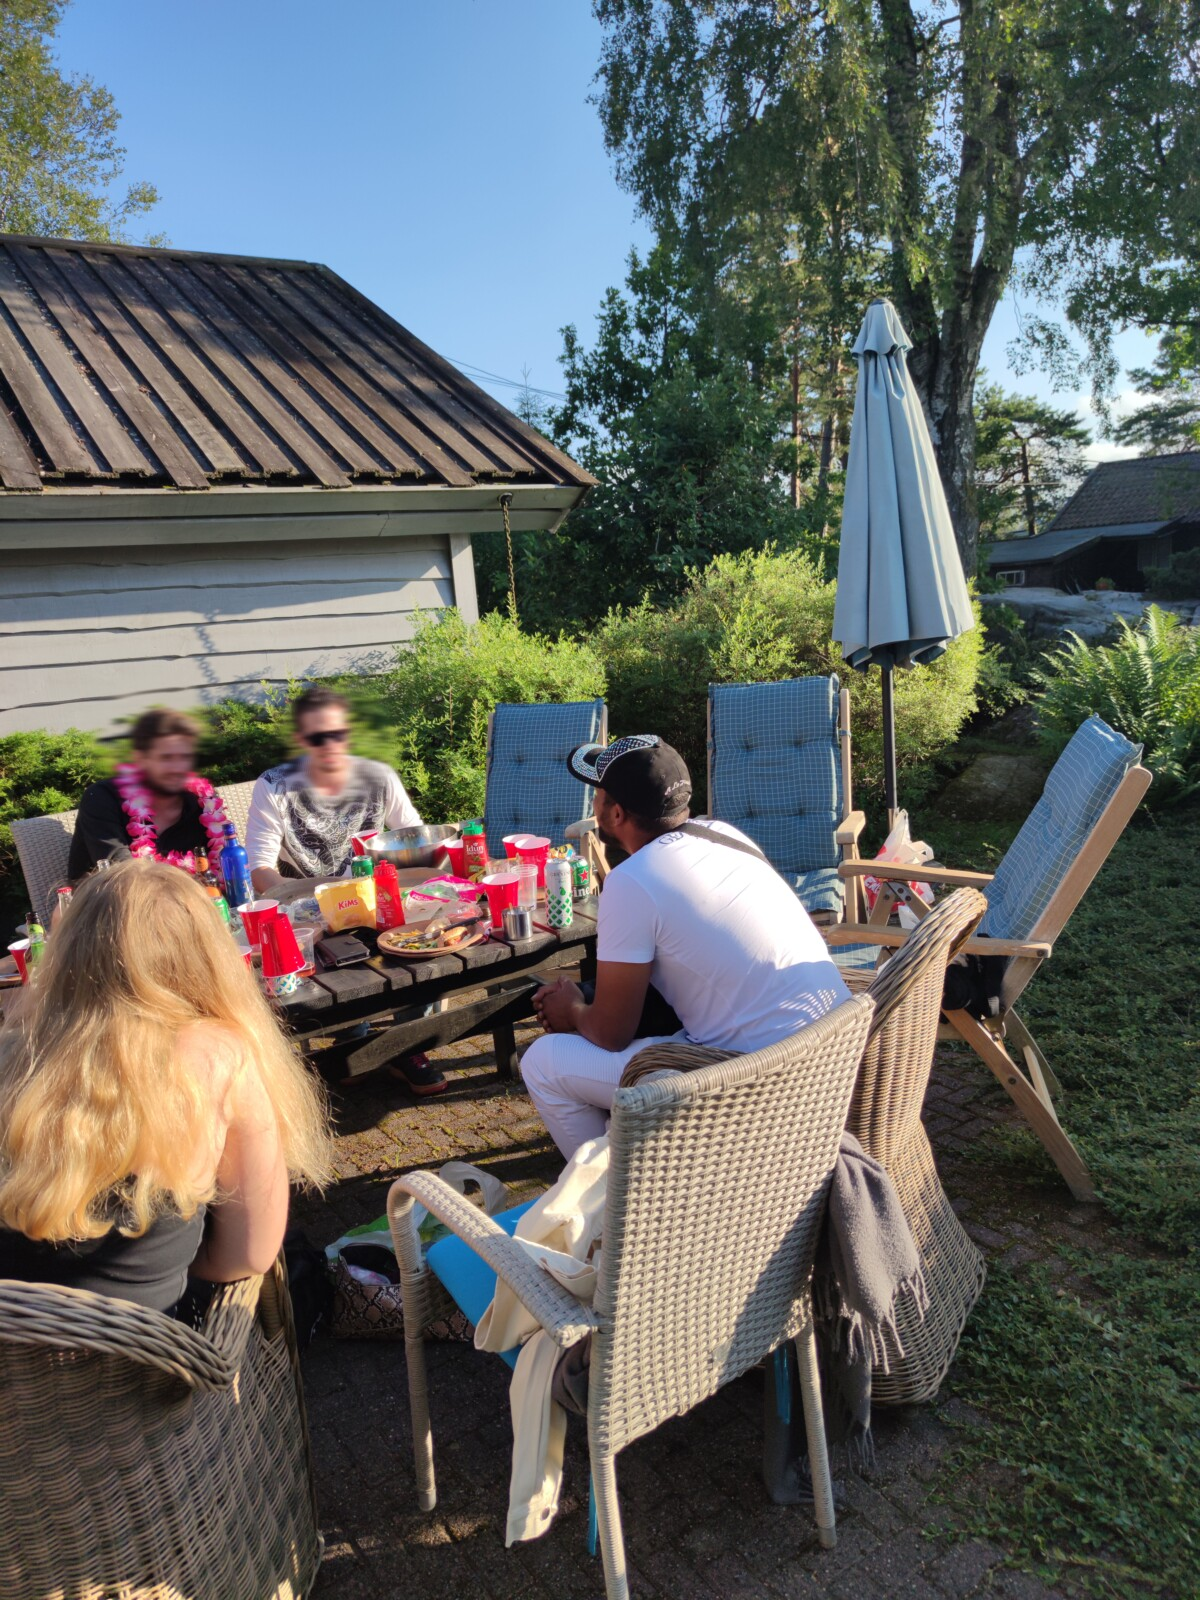 blogger-blogg-poolparty-norsksommer-isalicious-isalicious1-party-venner-fest-sommer-norgesommer-svømmebasseng-isalicious.blogg_.no